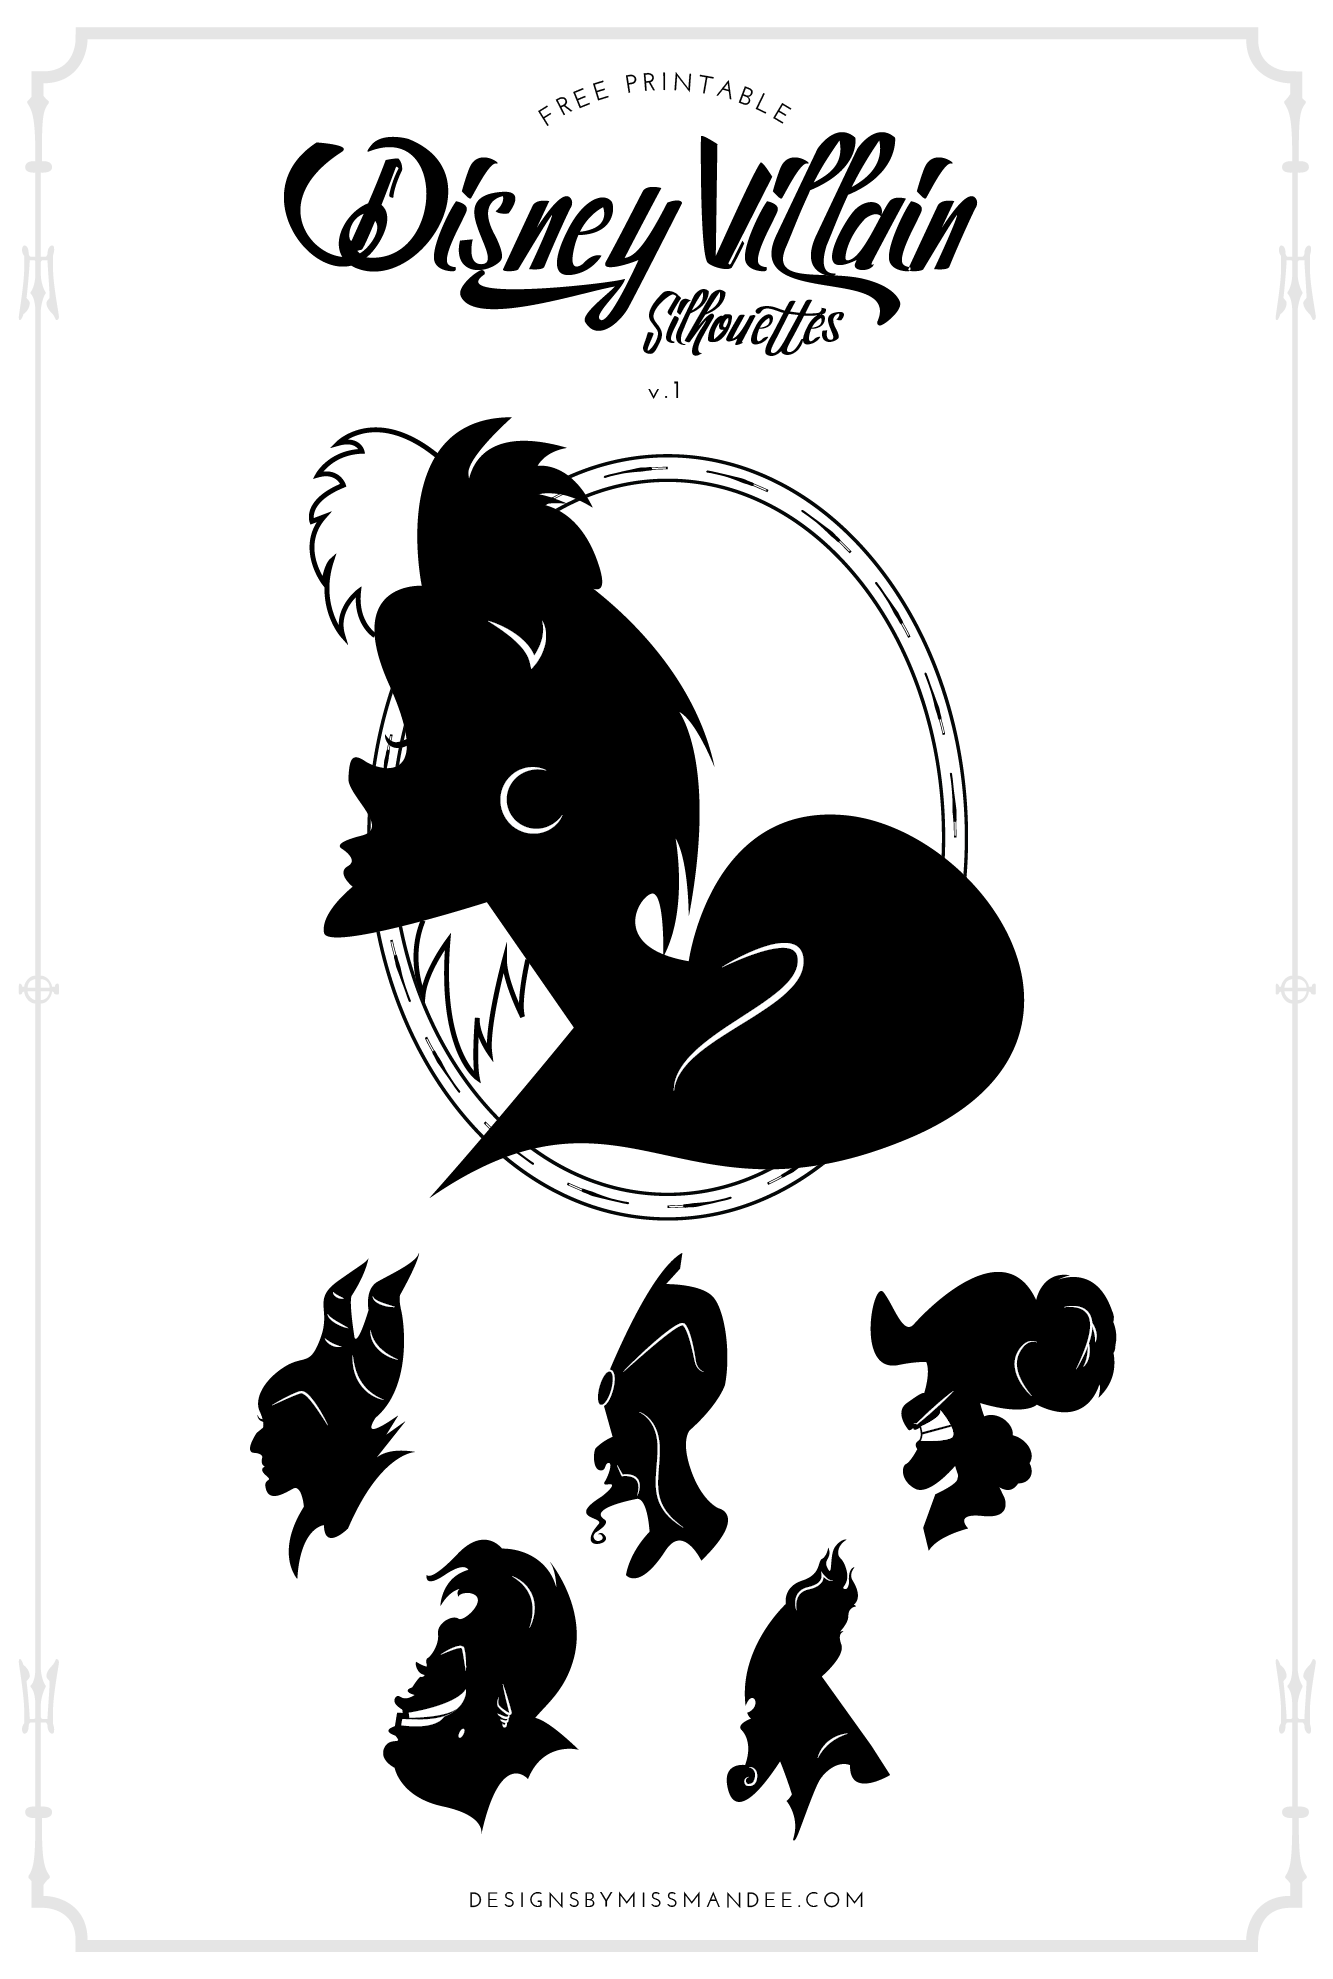 photograph regarding Free Printable Disney Silhouettes named Disney Villain Silhouettes v.1 Types By way of Overlook Mandee